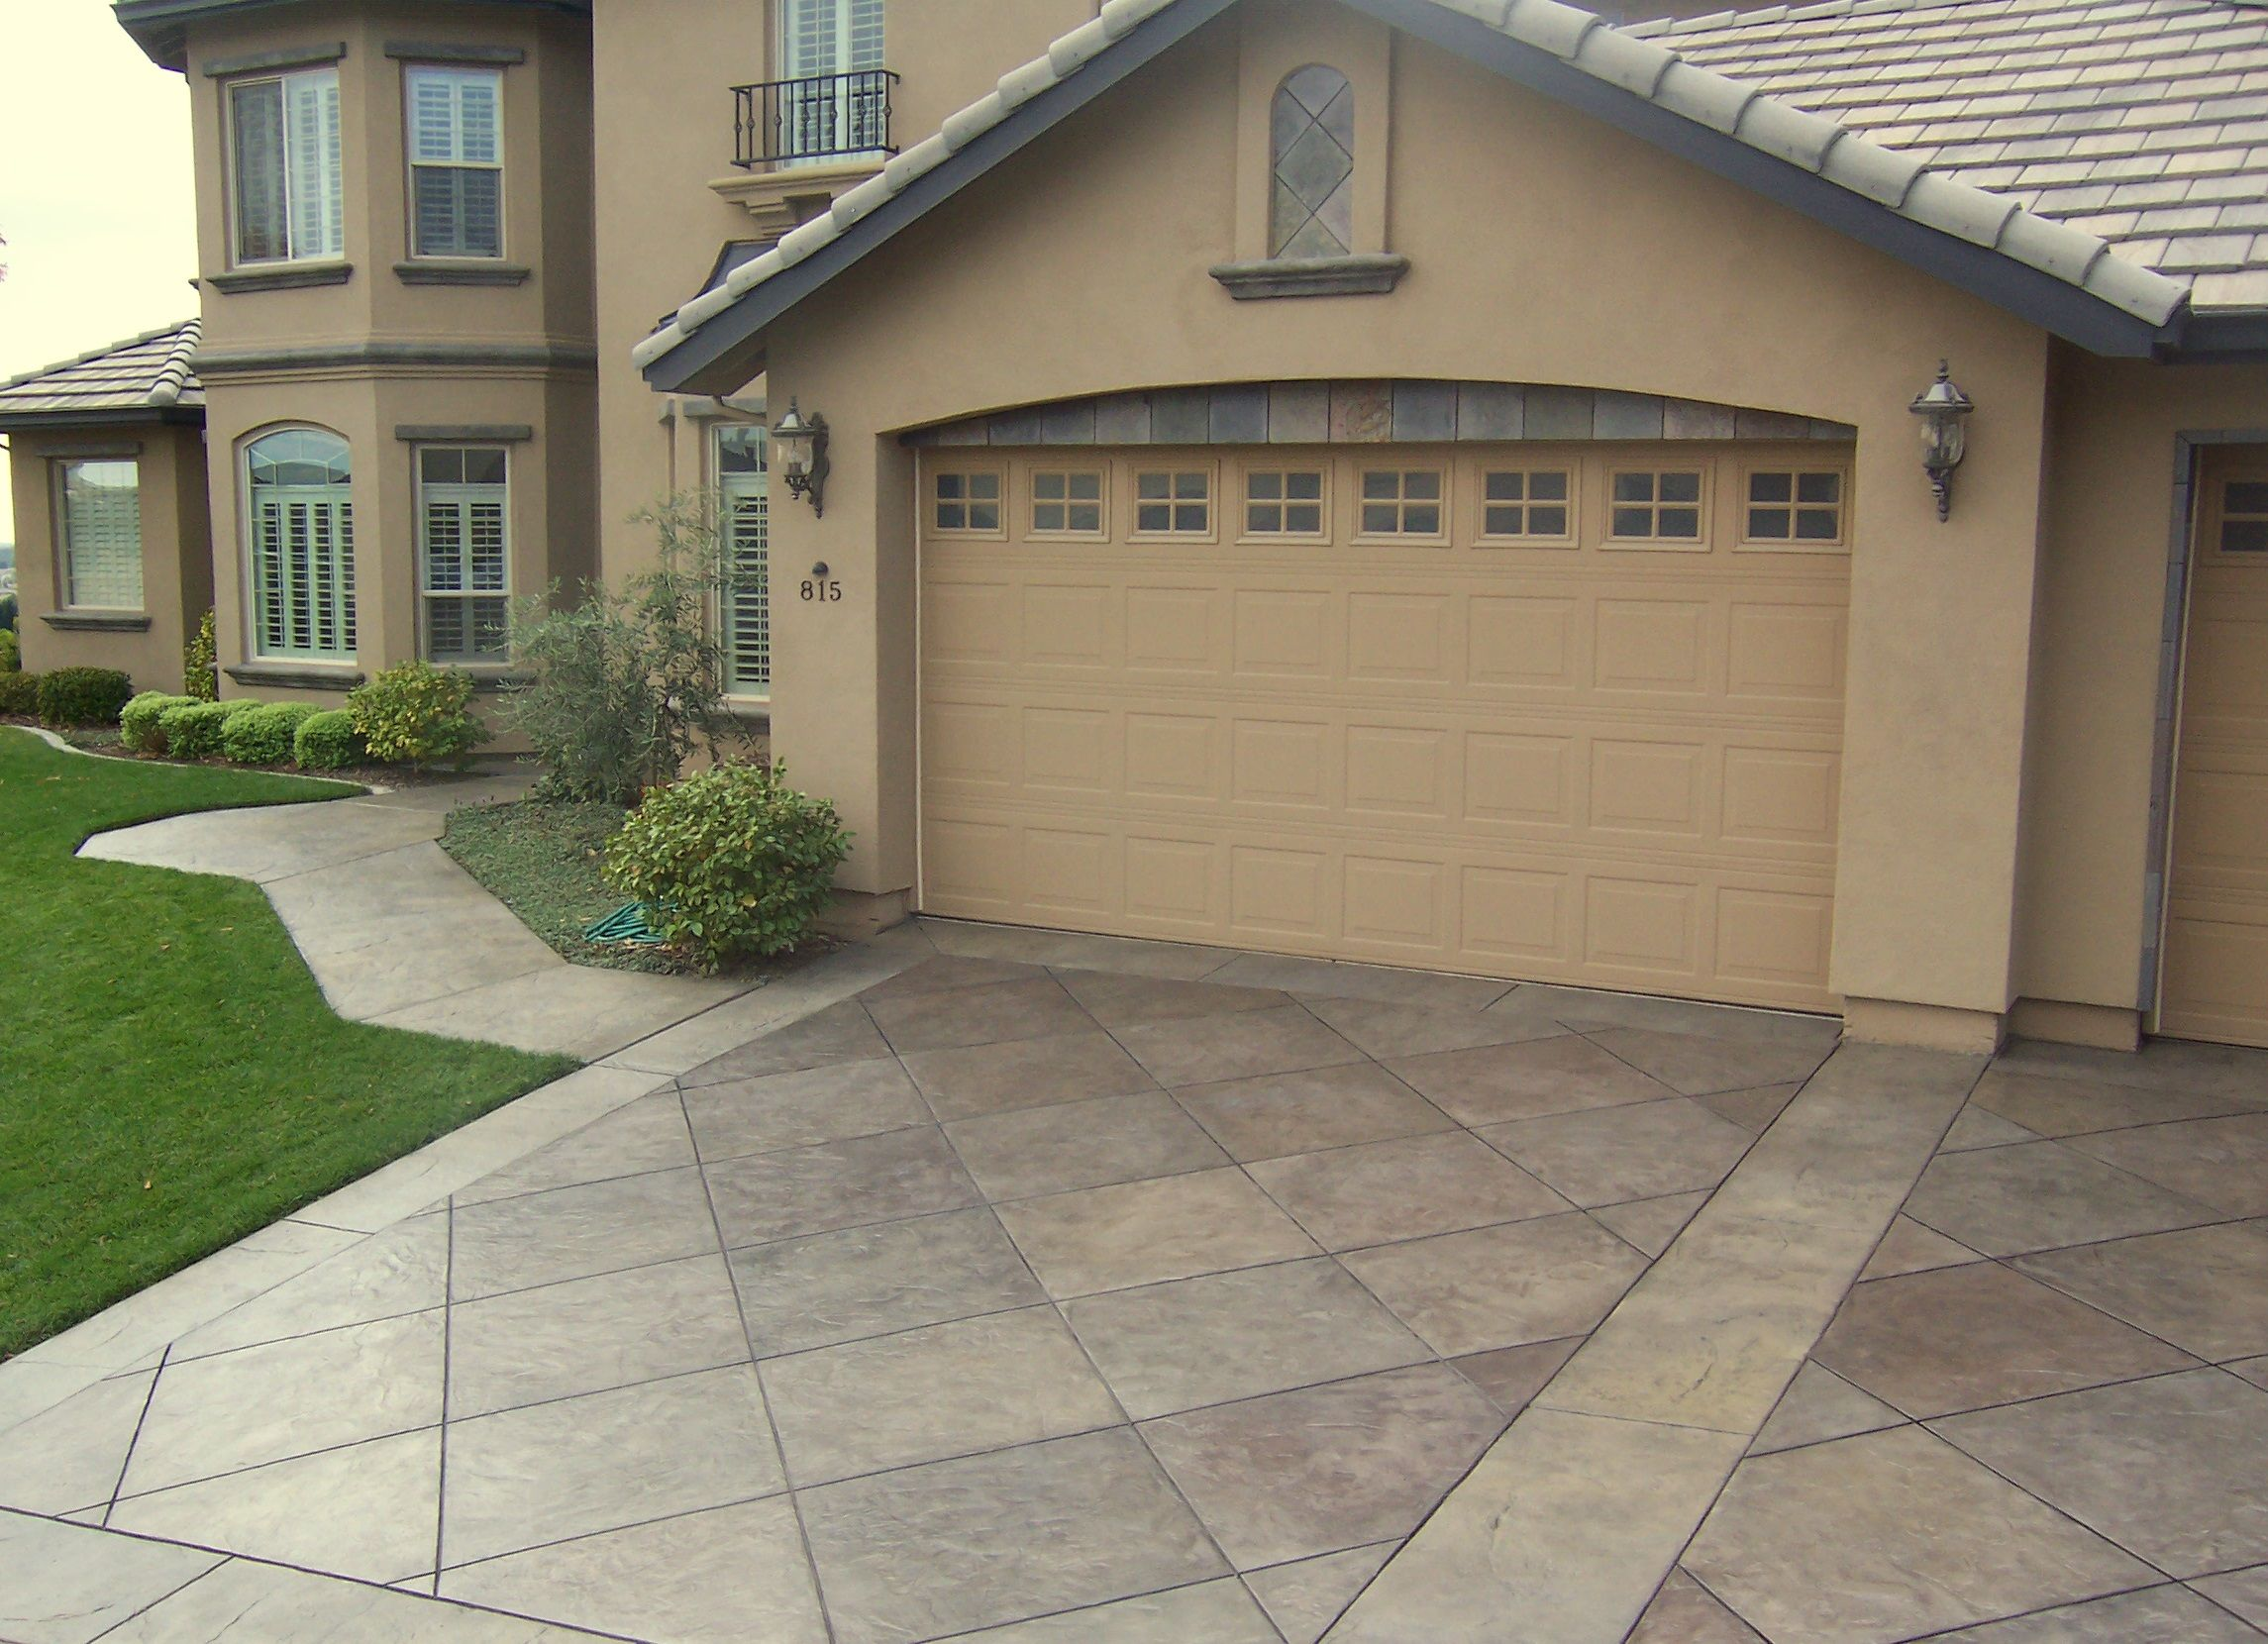 Cement driveway diy pinterest cement driveway driveways and i love this driveway pattern resurfaced concrete driveways are a great alternative to replacing existing driveways and can cut costs dramatically solutioingenieria Choice Image